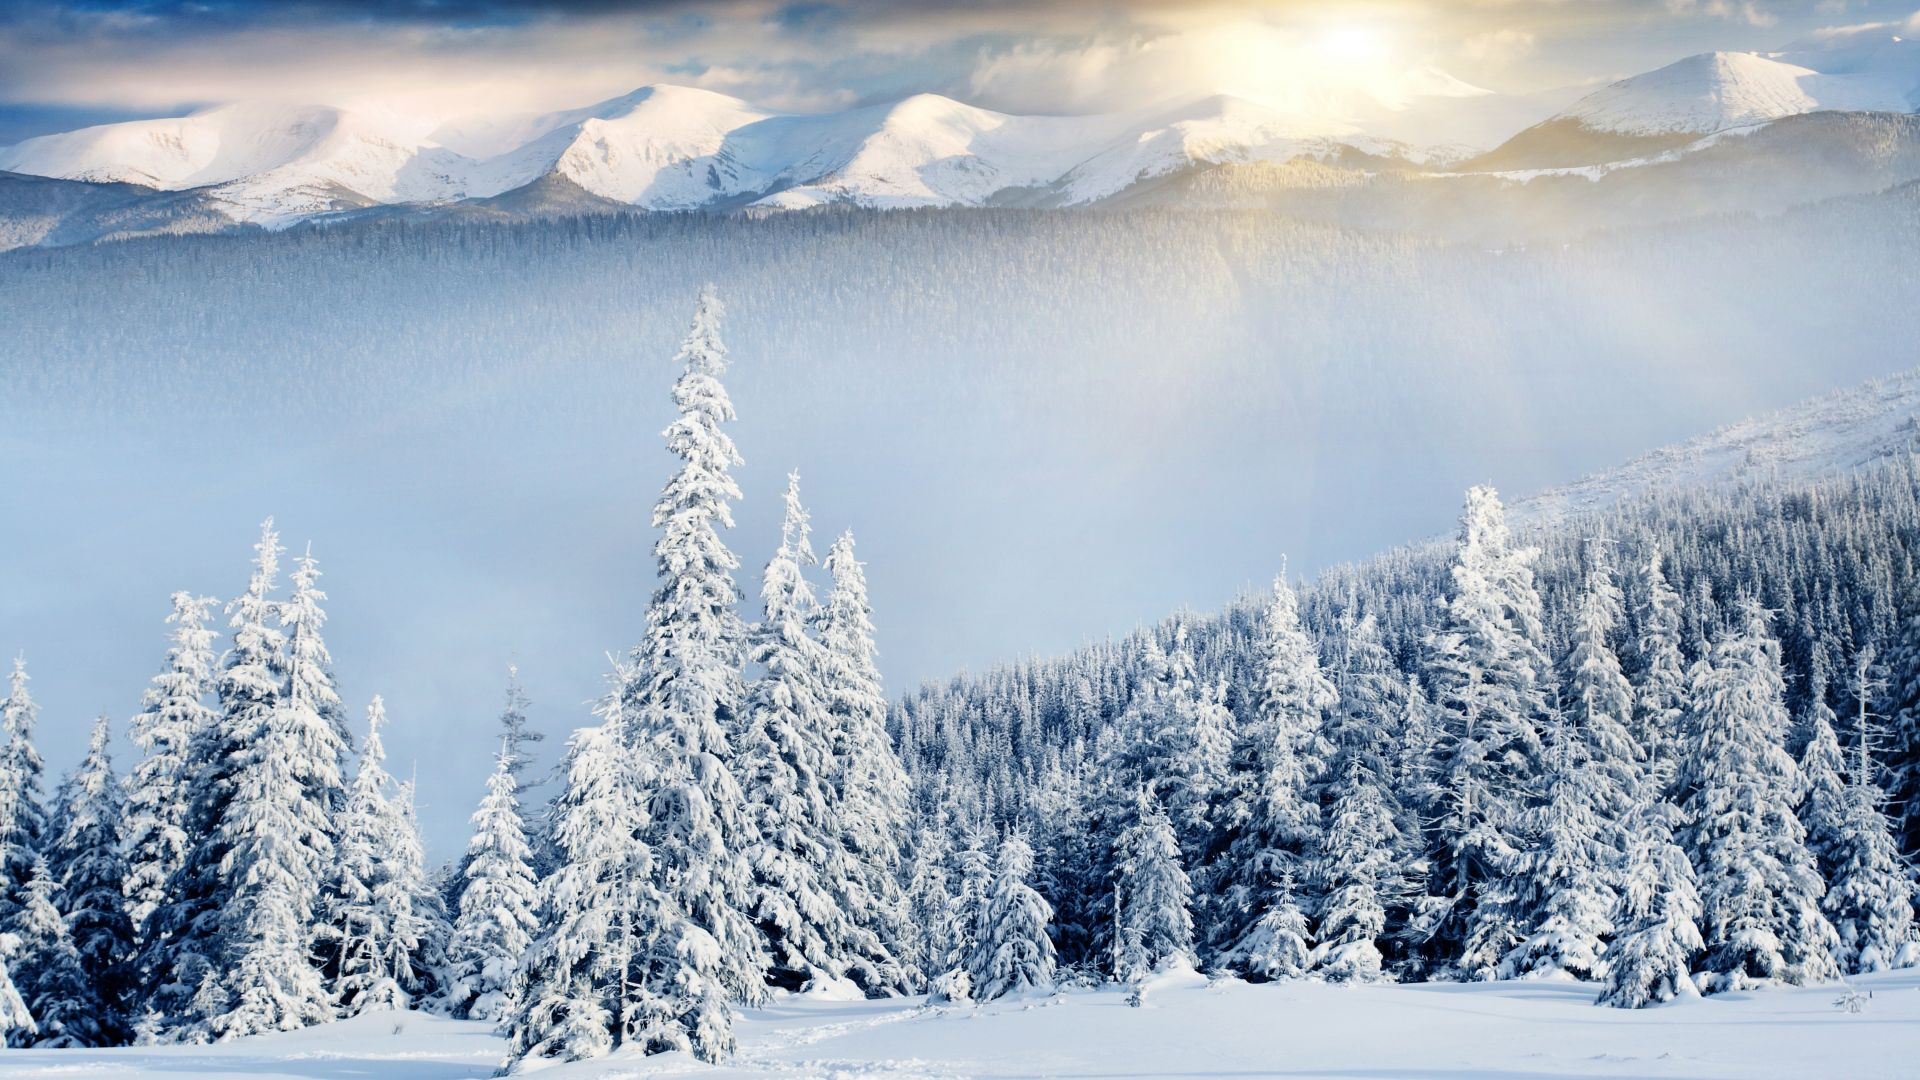 mountains, forest, trees, snow, winter, 8k (horizontal)